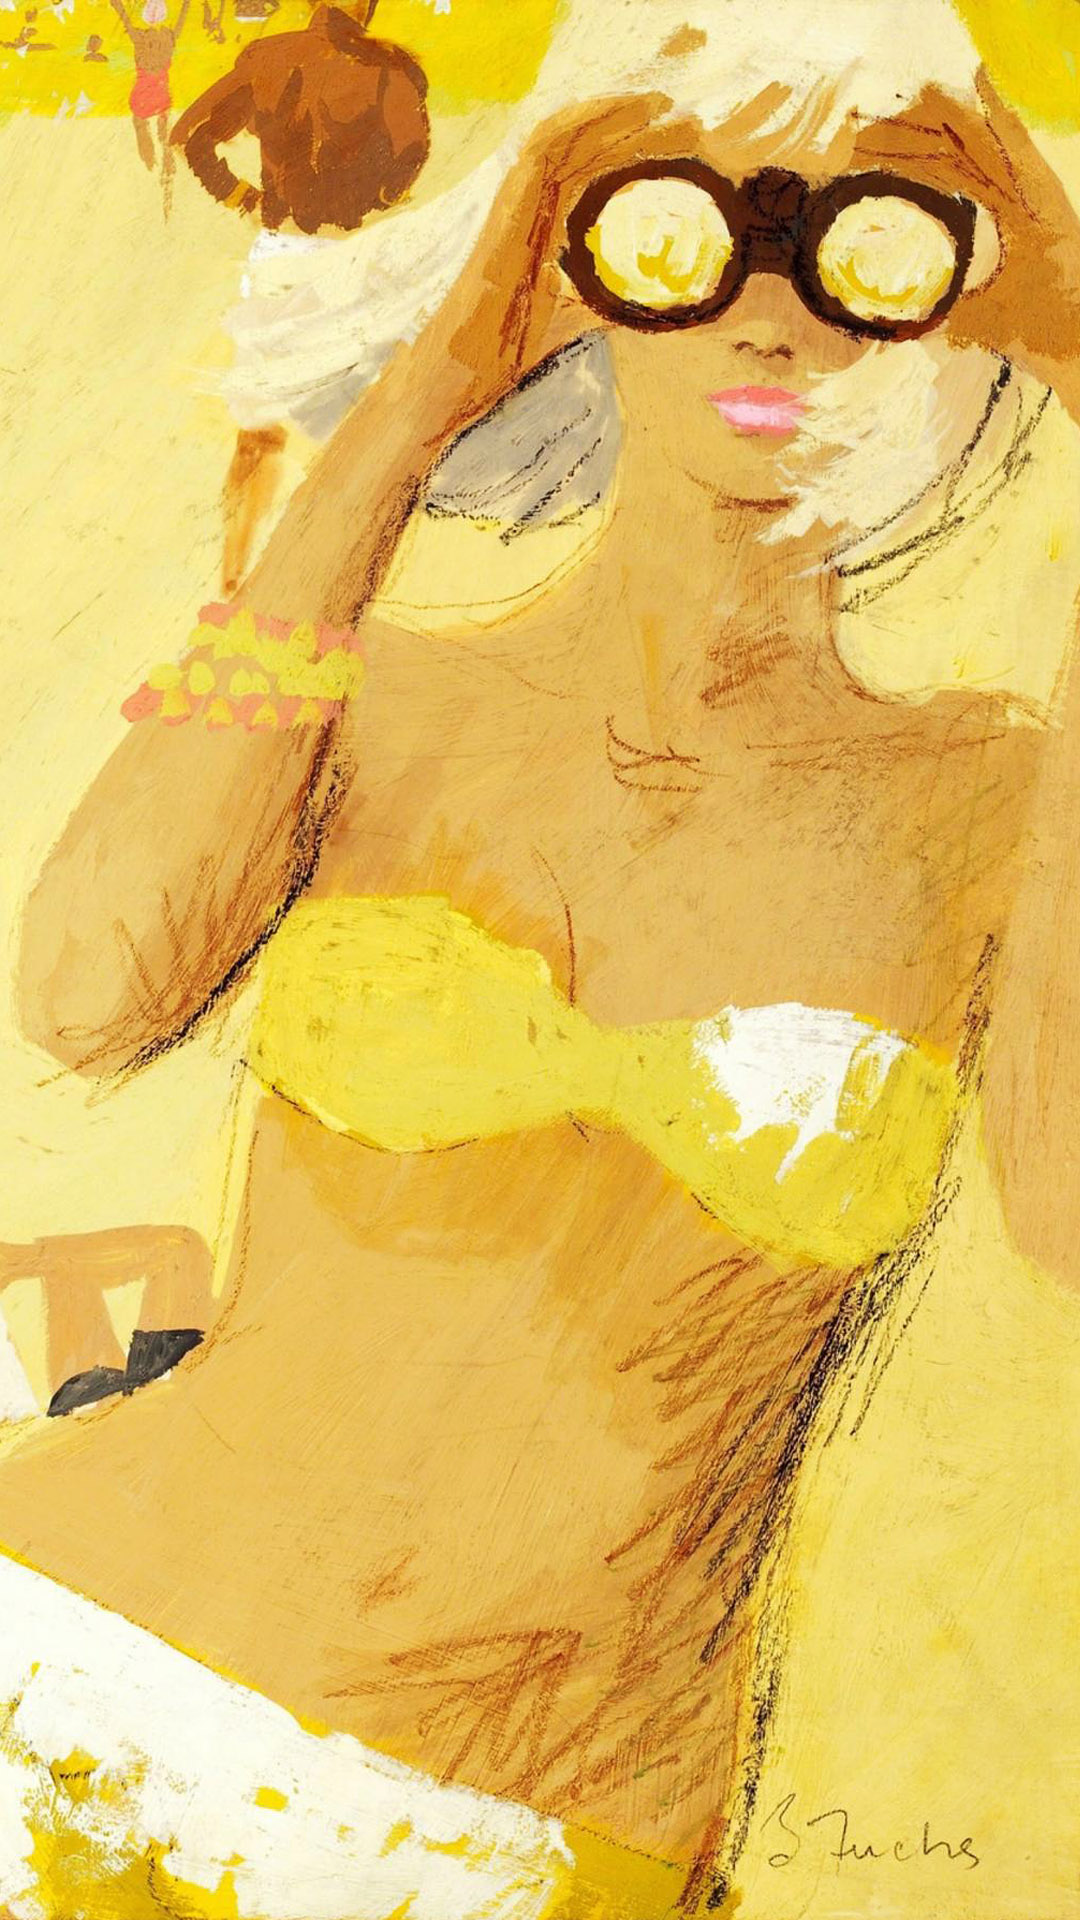 バーニー・フュークス Bernie Fuchs - Girl with Binocular 1080x1920